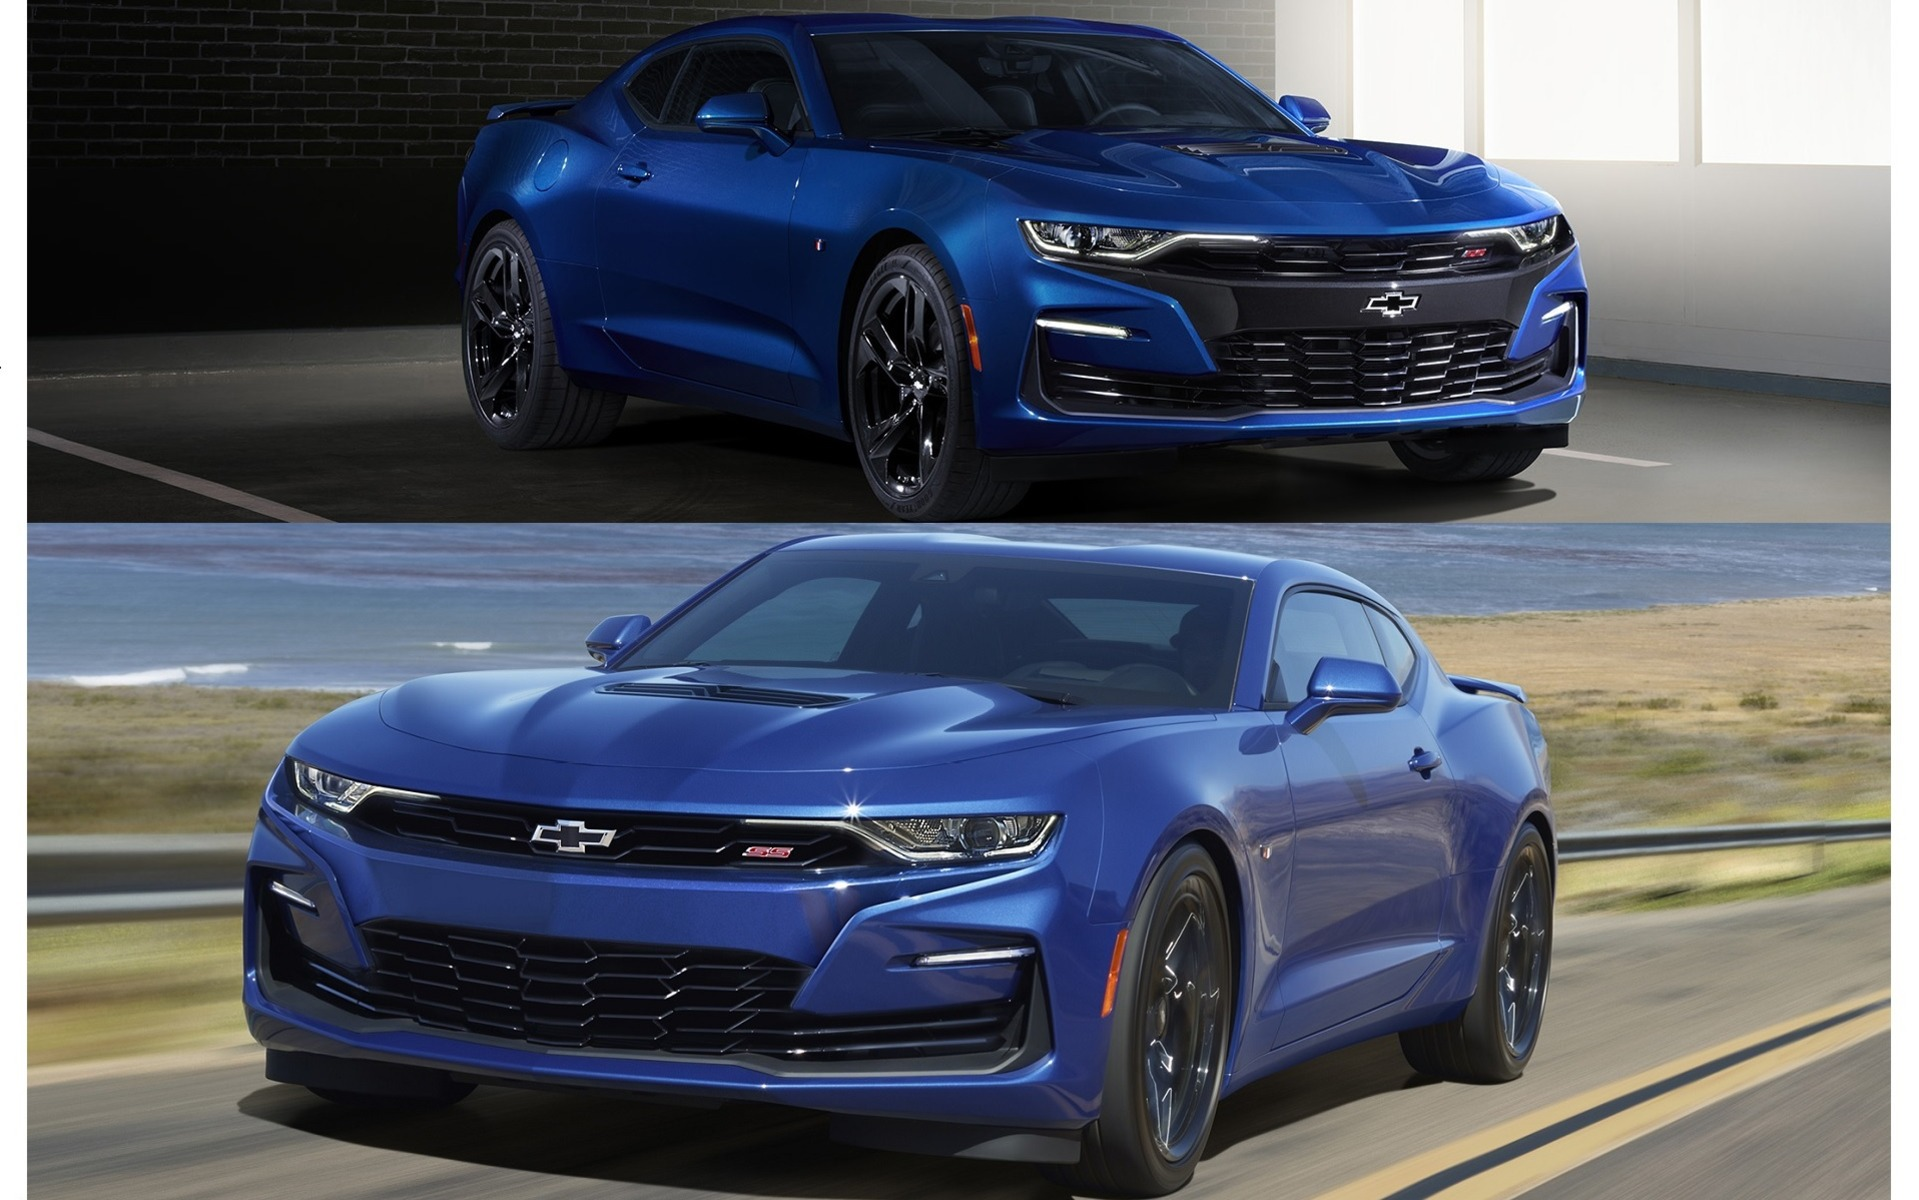 2020 Chevrolet Camaro New Ss Face Again New V8 Model And More 2 4